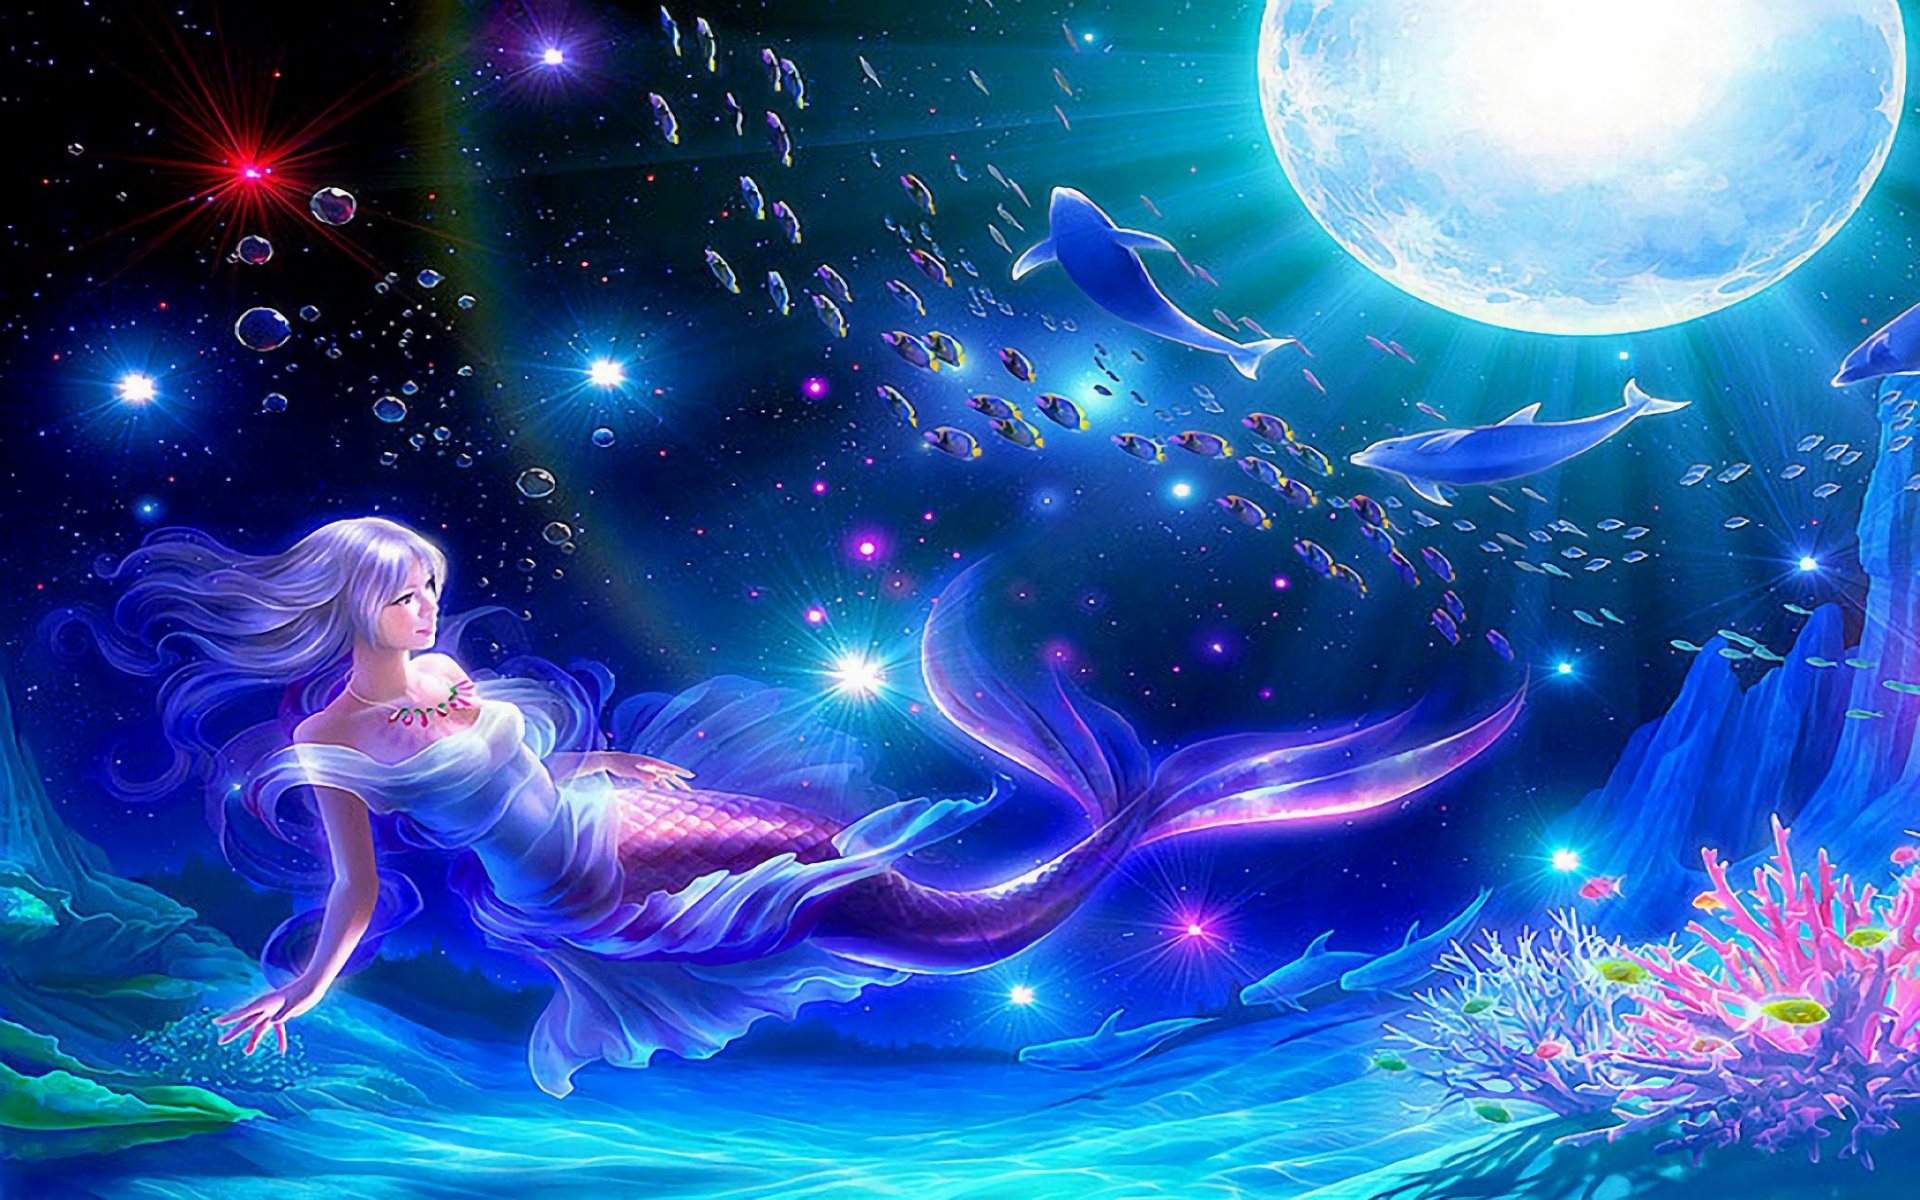 Fantasy - Mermaid  Kagaya Fantasy Underwater Fisch Mond Colorful Wallpaper